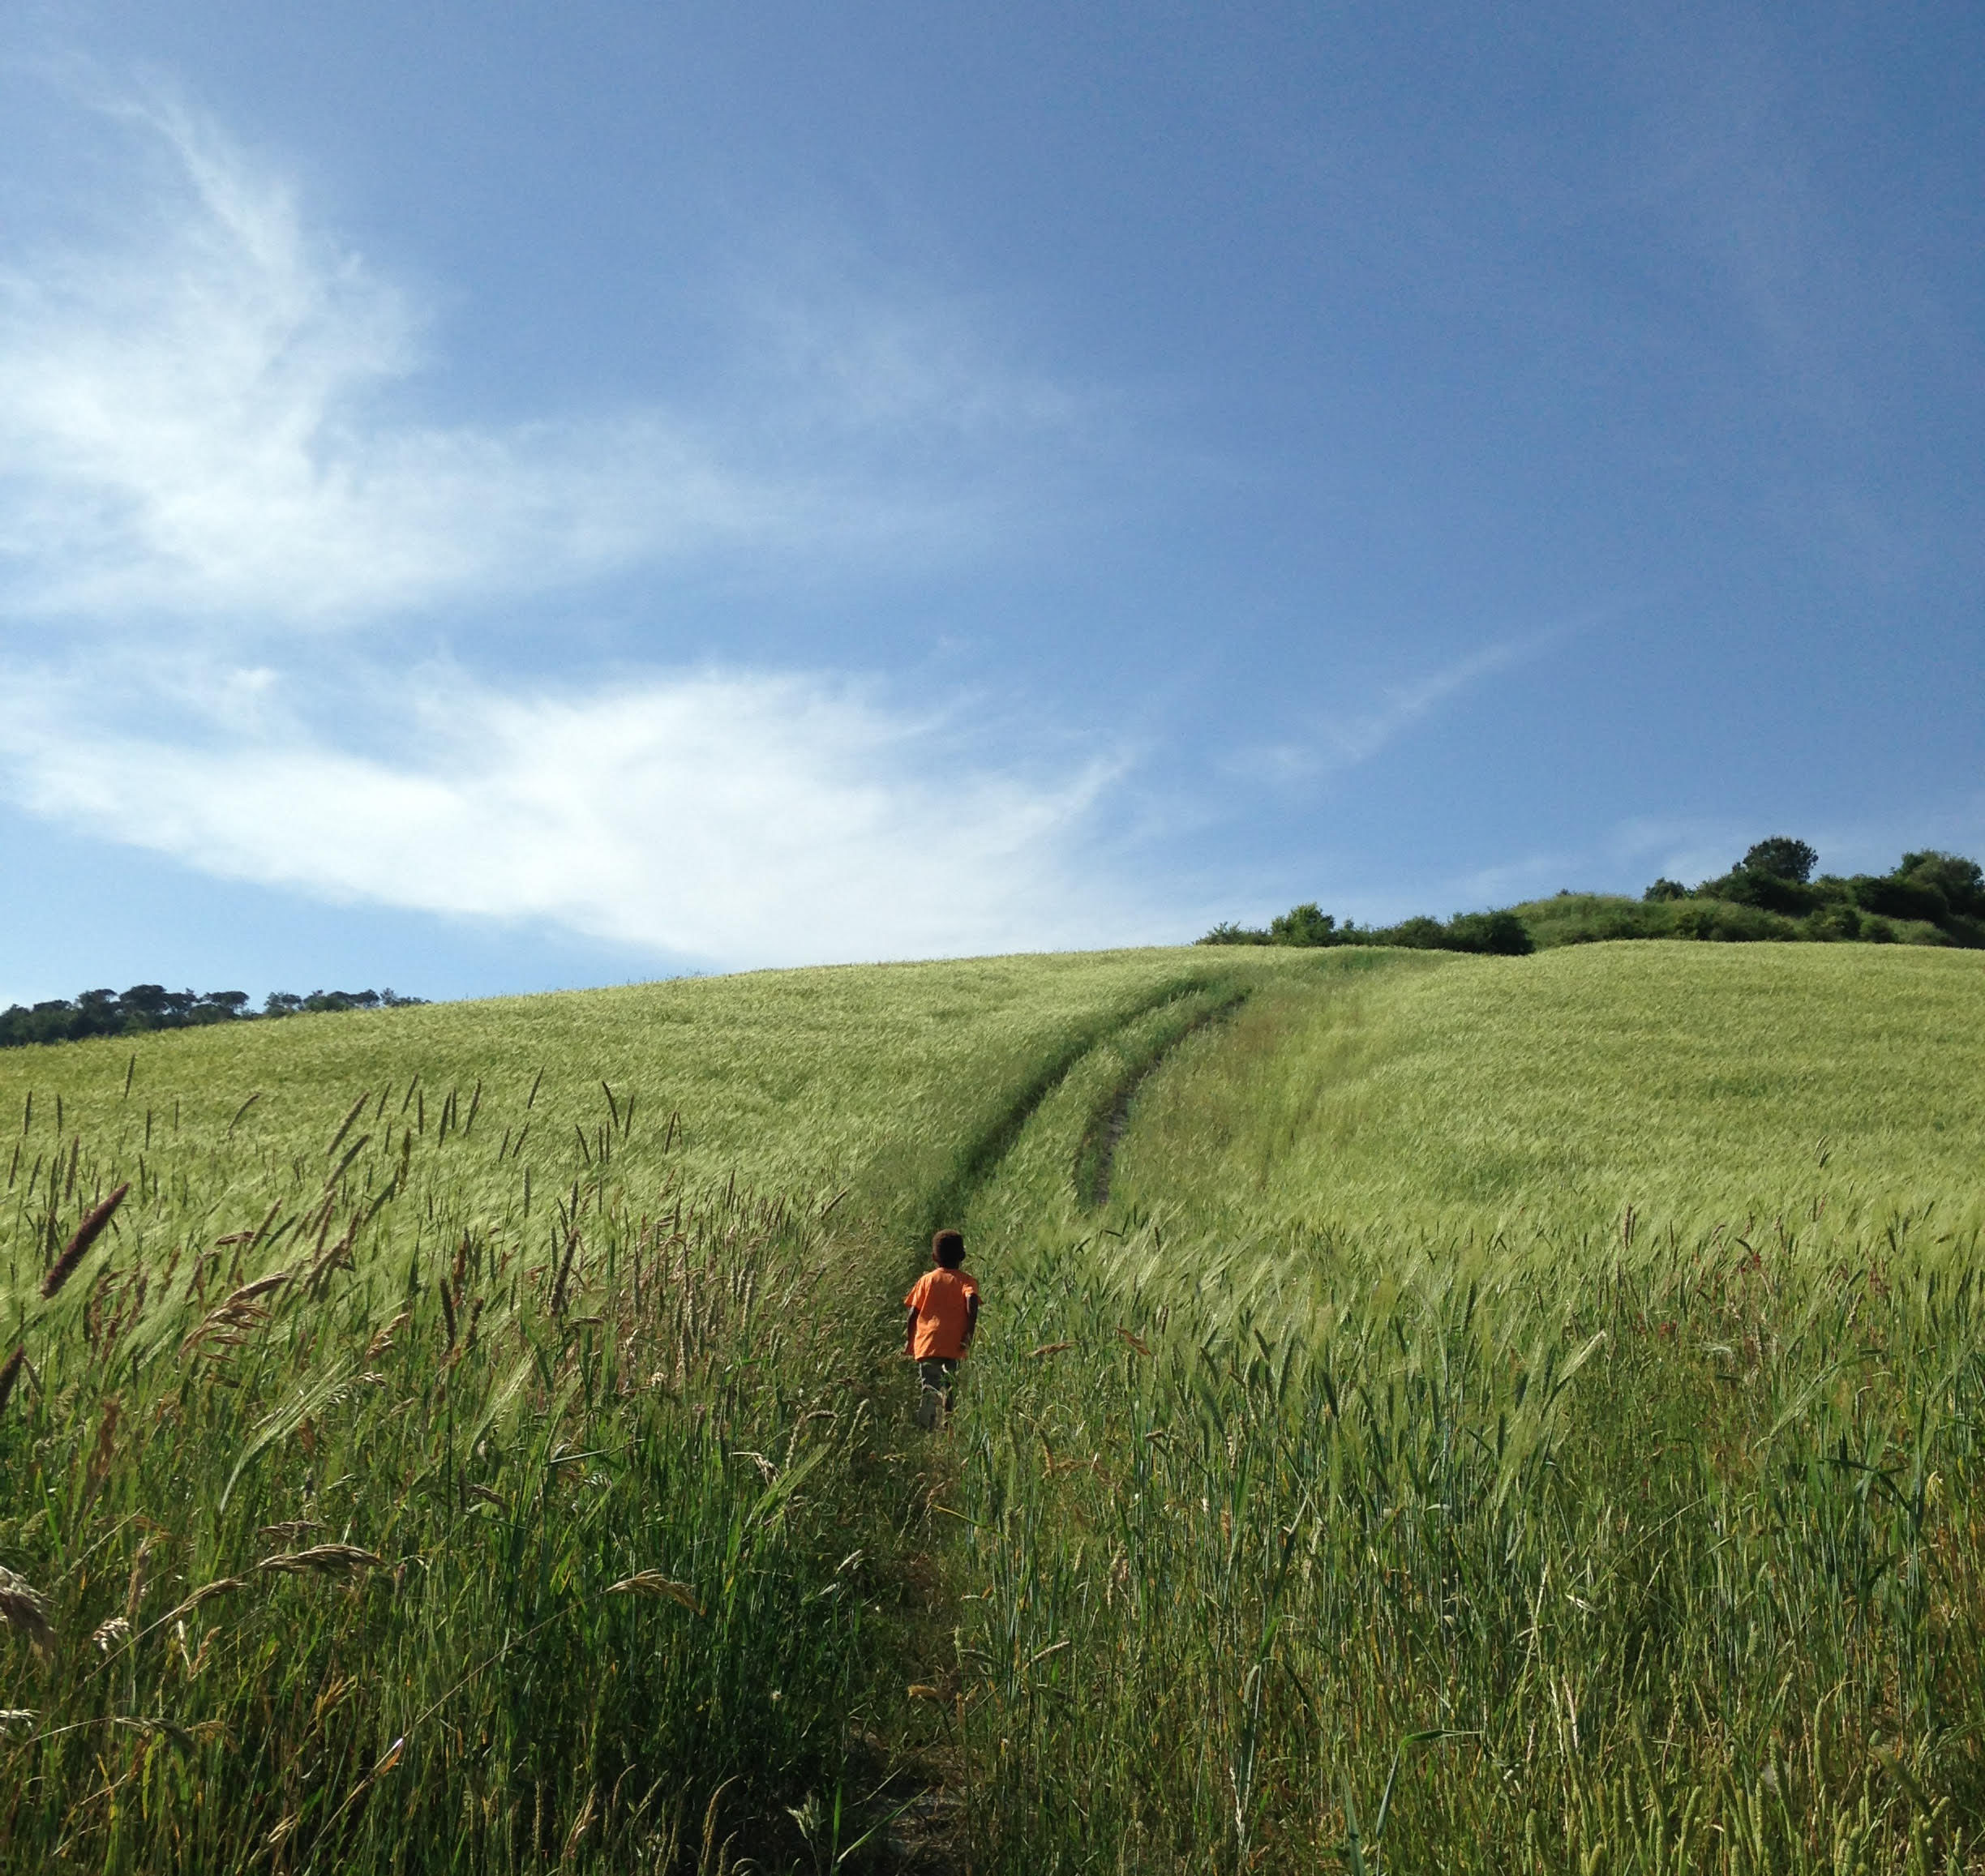 A child walking in the fields in Tuscany